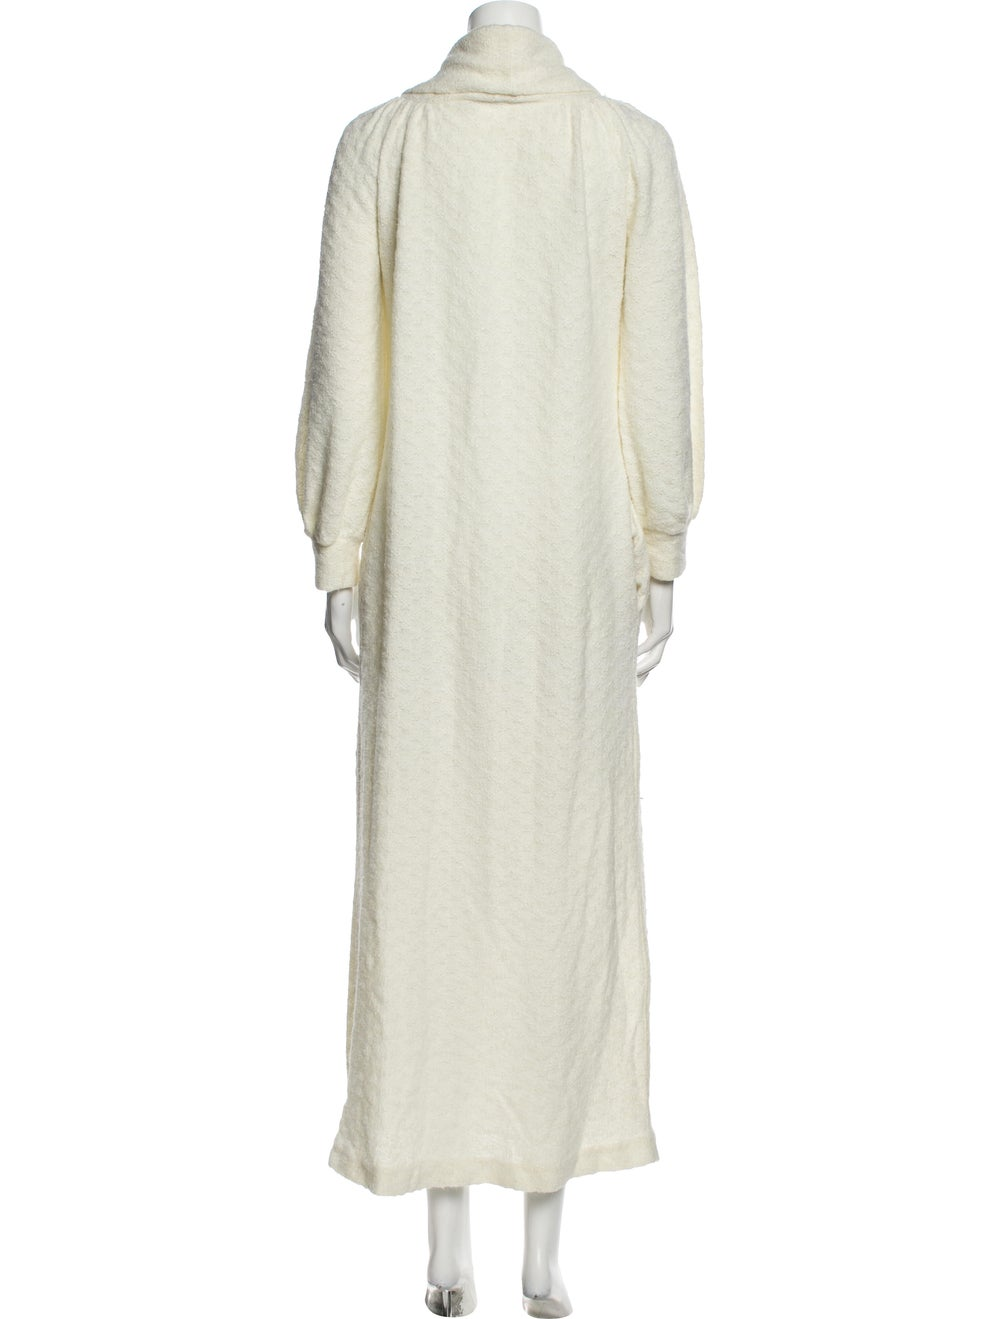 Christian Dior Vintage Nightgown - image 3